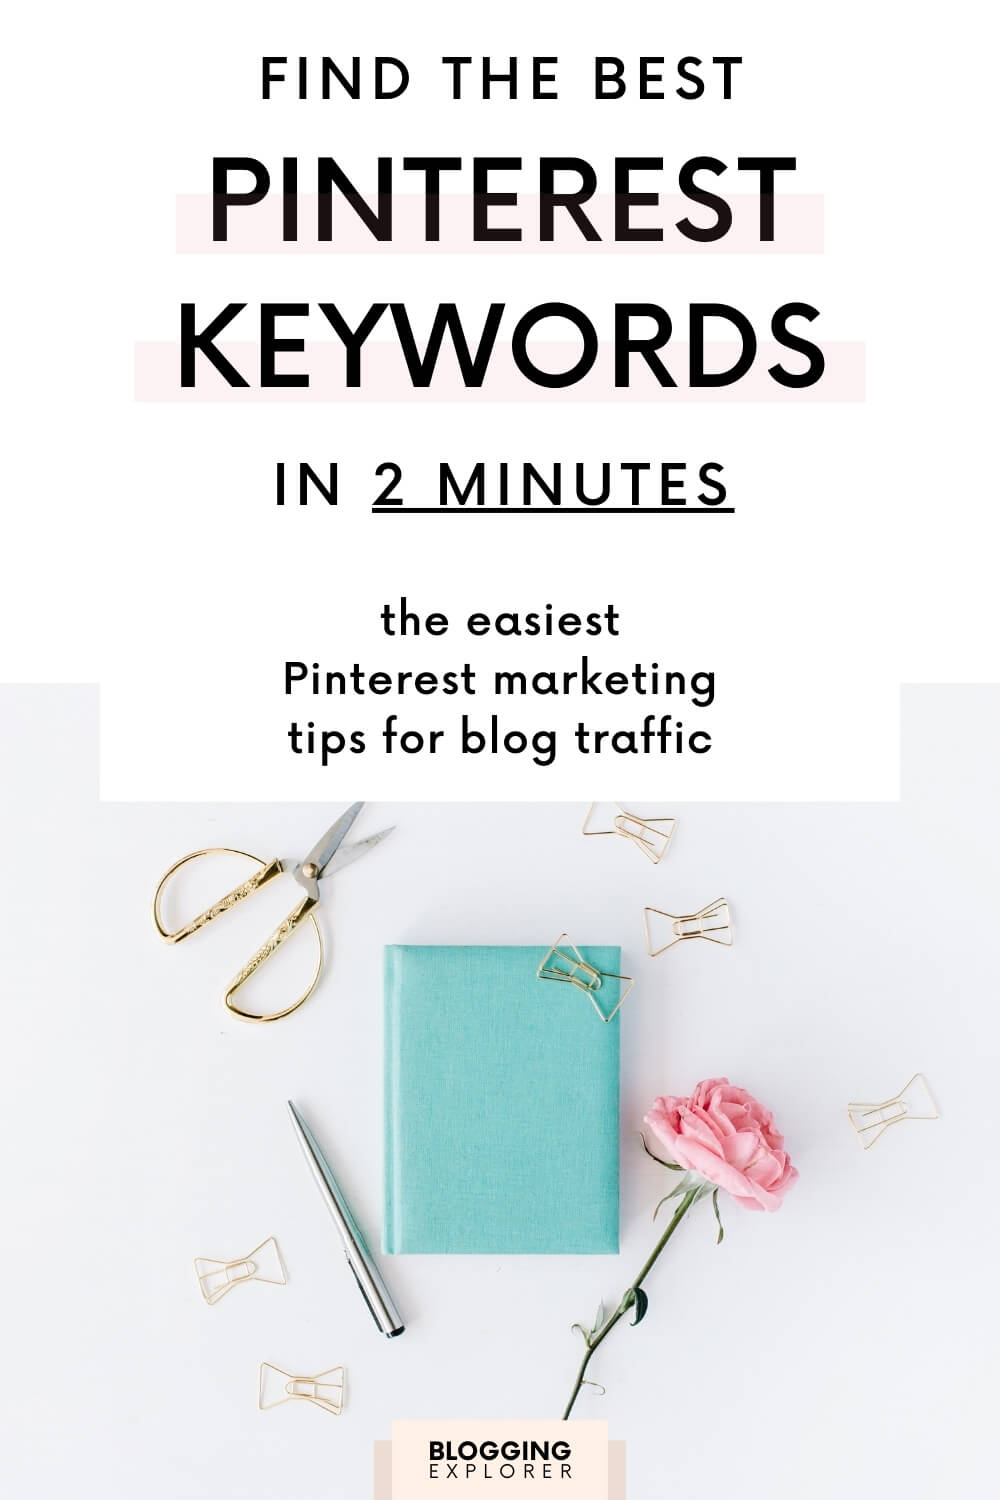 How to Find Powerful Pinterest Keywords to Grow Your Blog in 2021